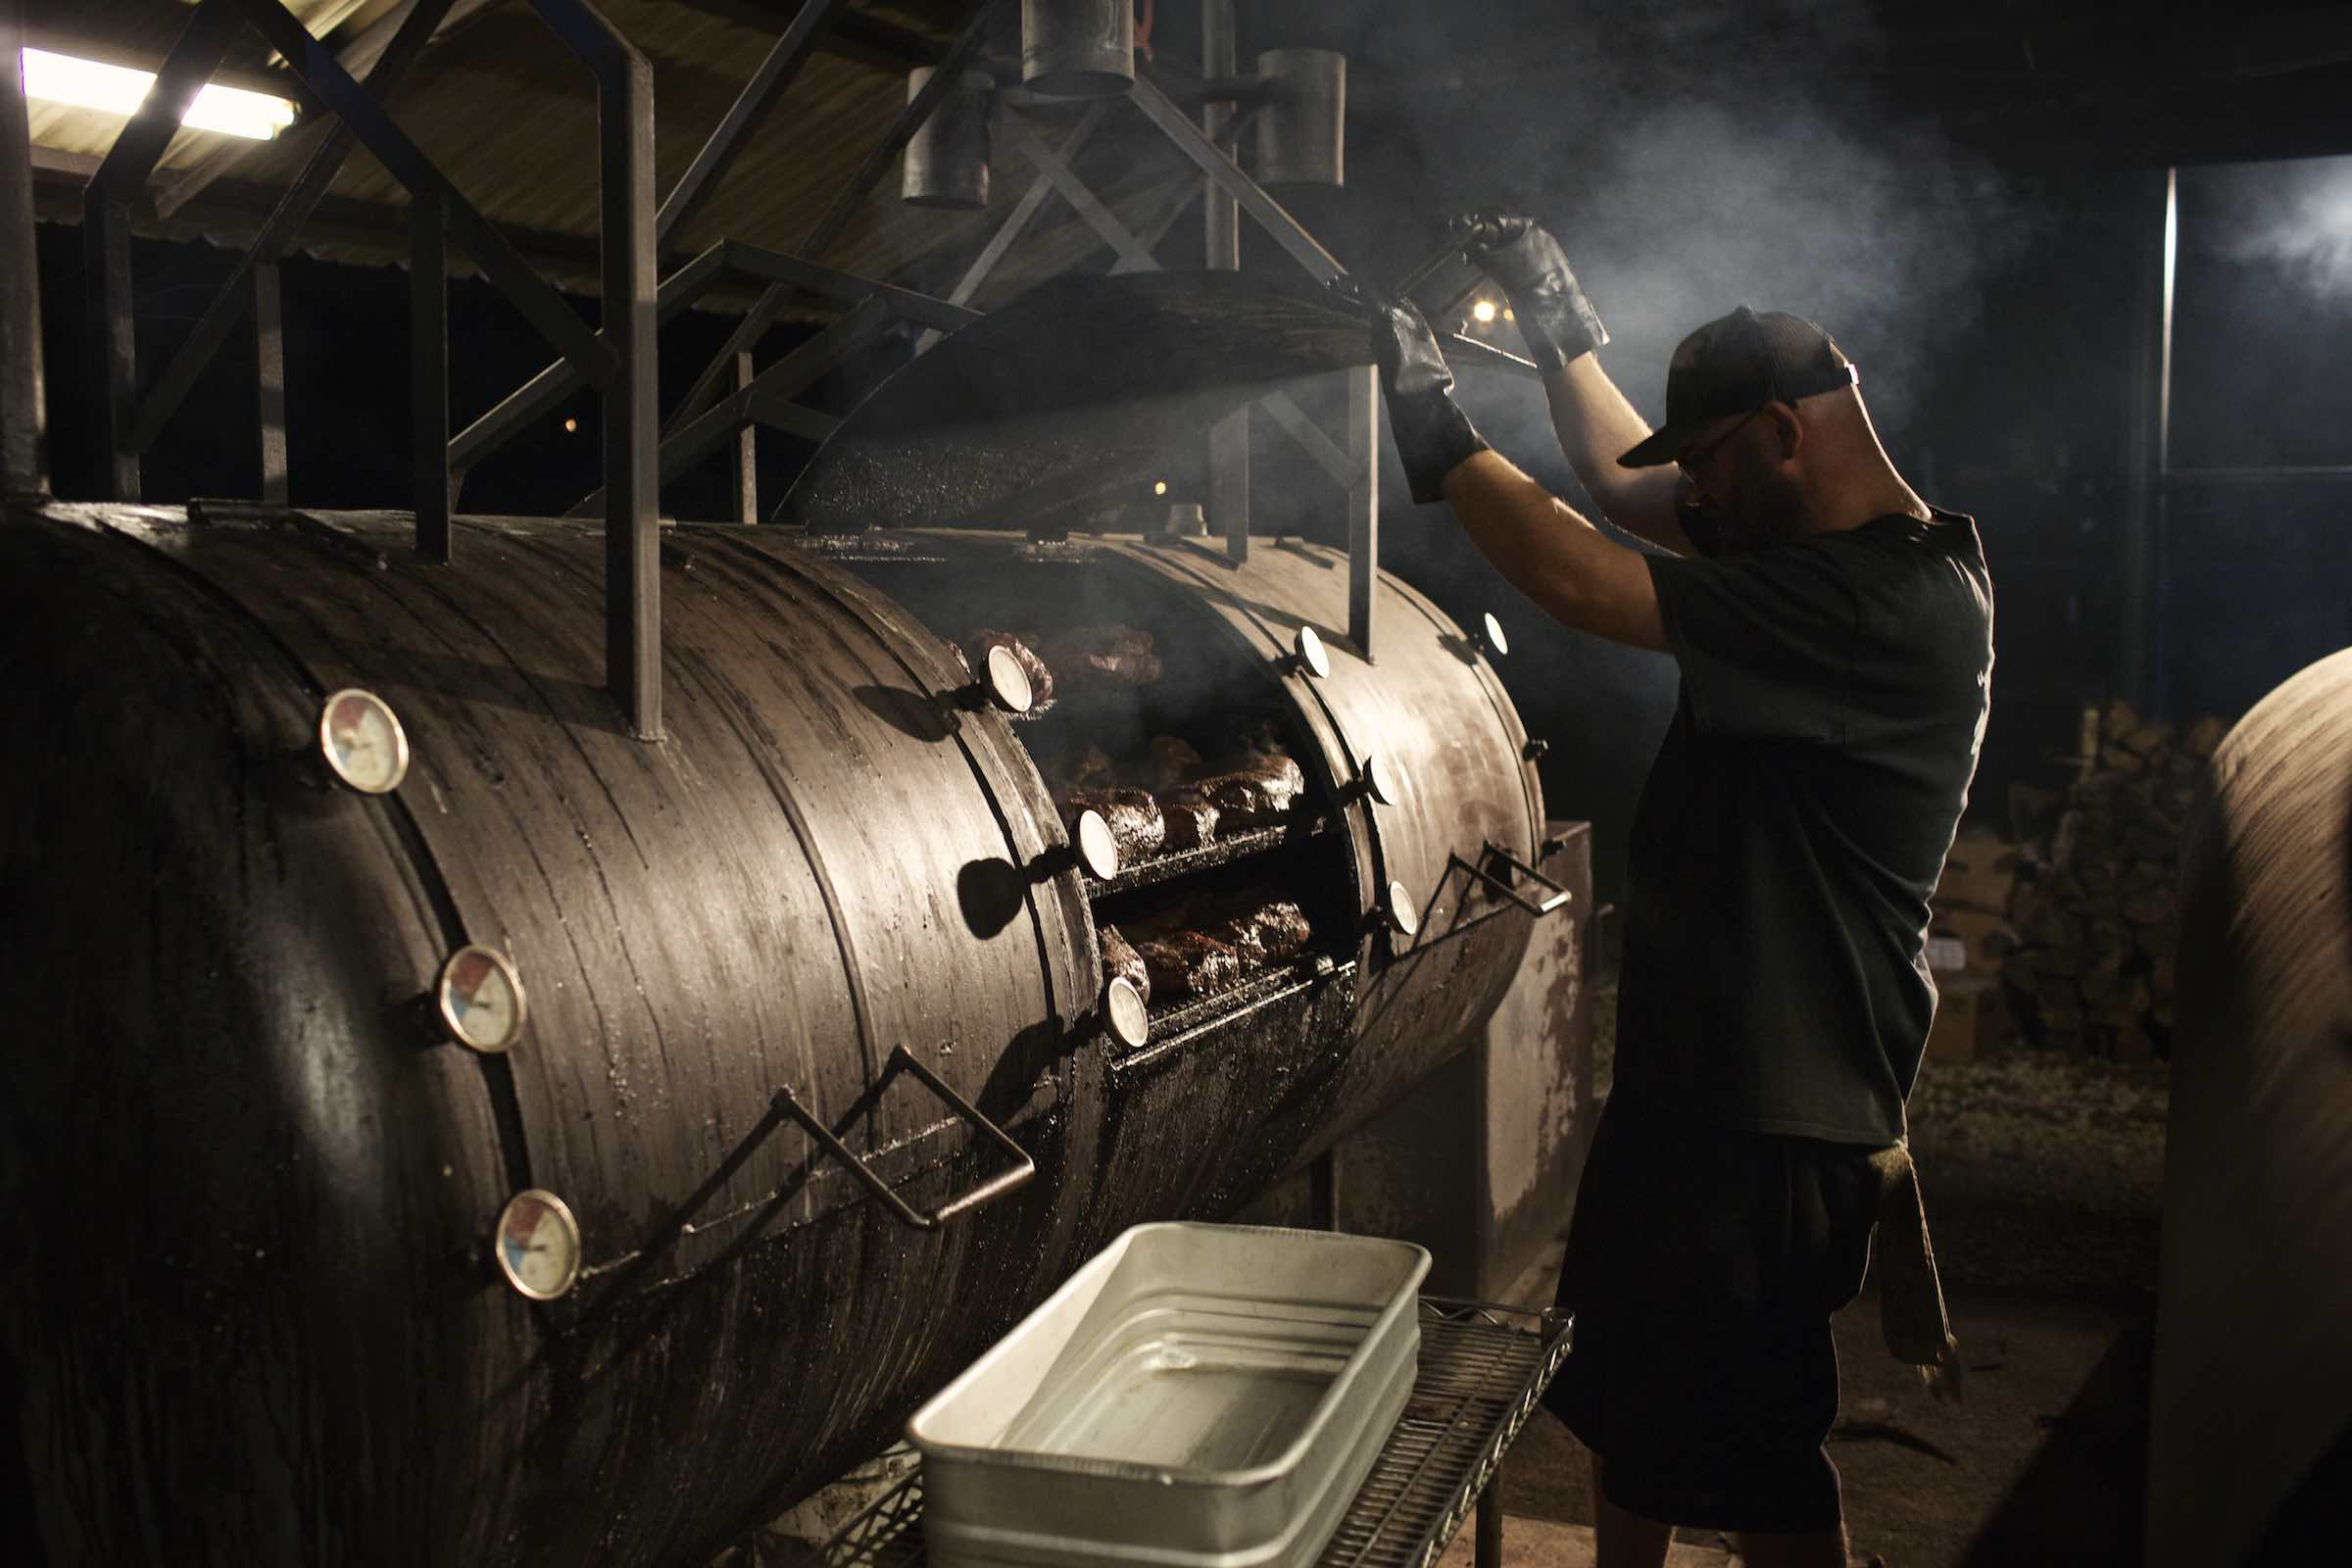 Jody Horton Photography - Young pit master observing meats cooking in a large smoker.